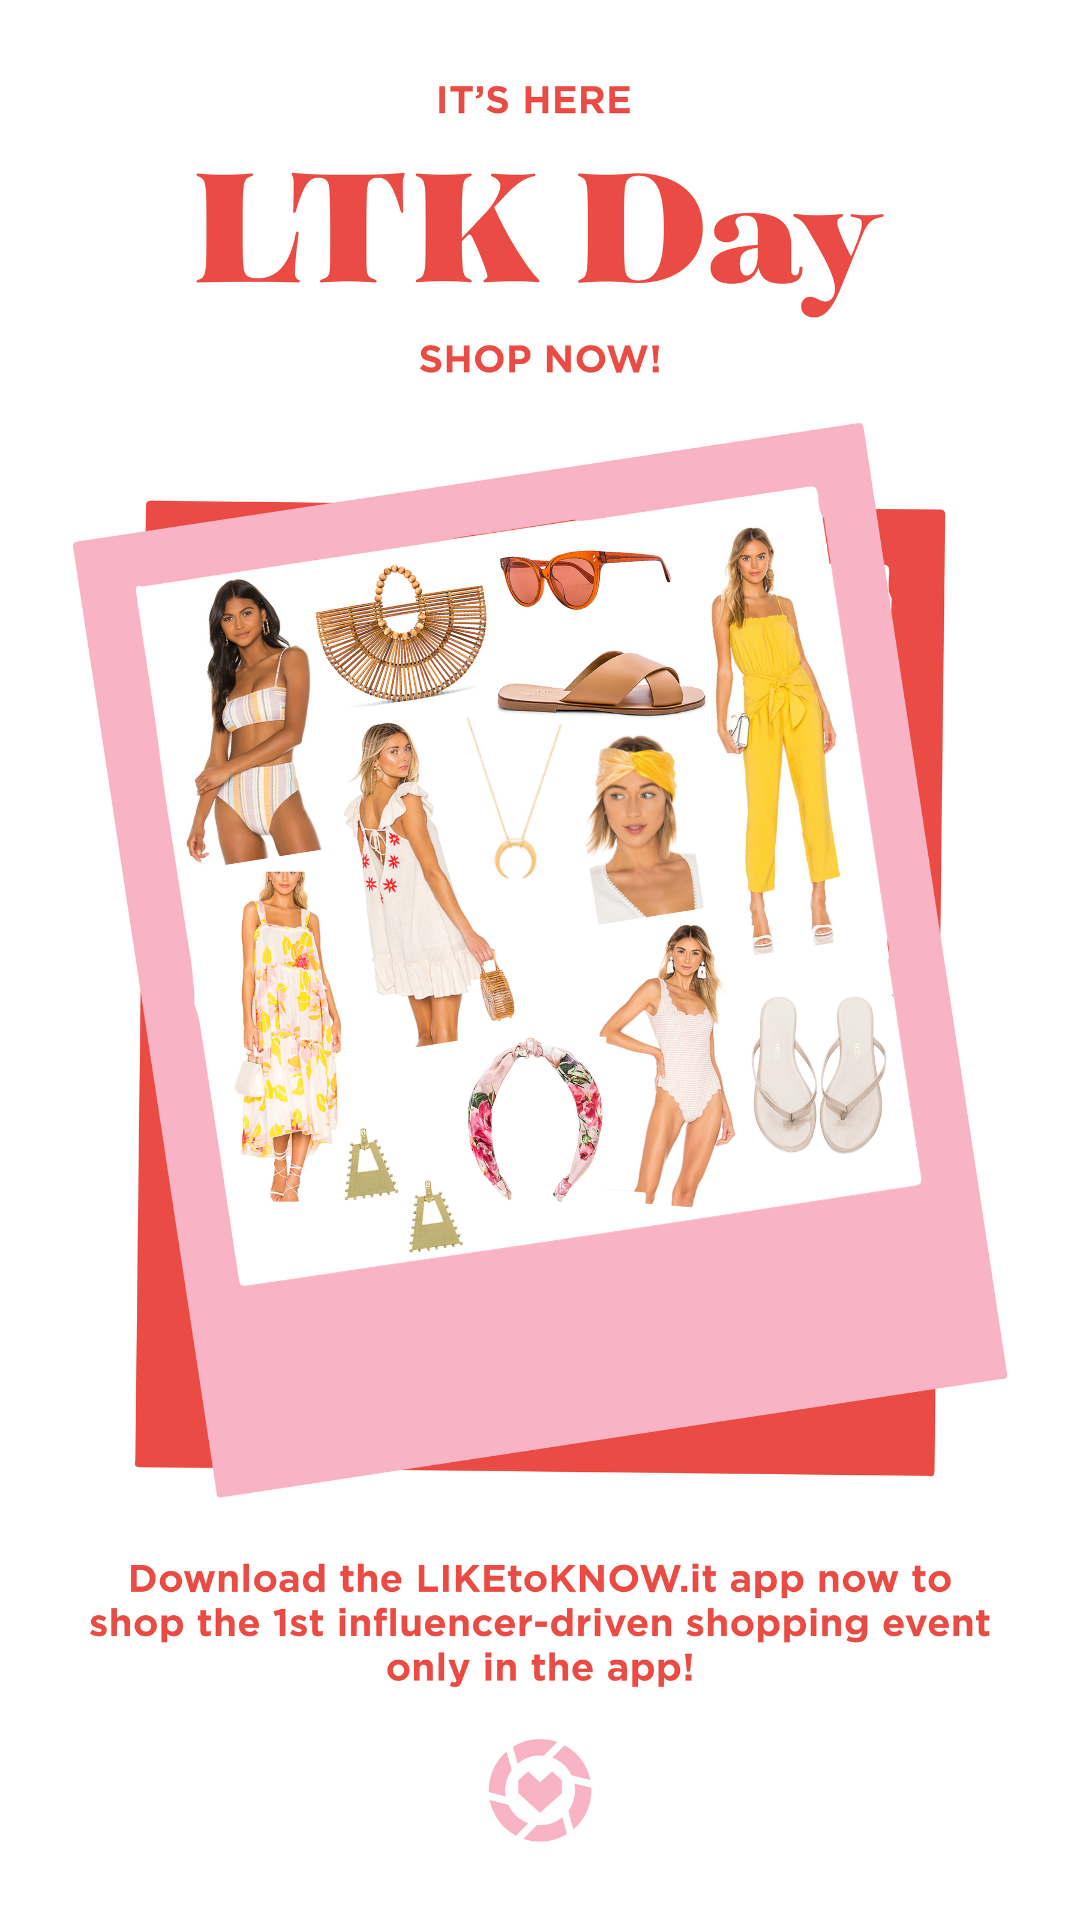 Striped High Waisted Bikini  |  Beaded Wood Bag  |  Red Sunnies  |  Whiskey Slide On Sandals  |  Yellow Jumper  |  Floral Print Tiered Maxi  |  Tie Back Cream Dress  |  Gold Horn Necklace  |  Yellow & Orange Headband  |  Gold Studded Earrings  |  Floral Print Headband  |  Scalloped One-Piece  |  Nude Flip Flops  |